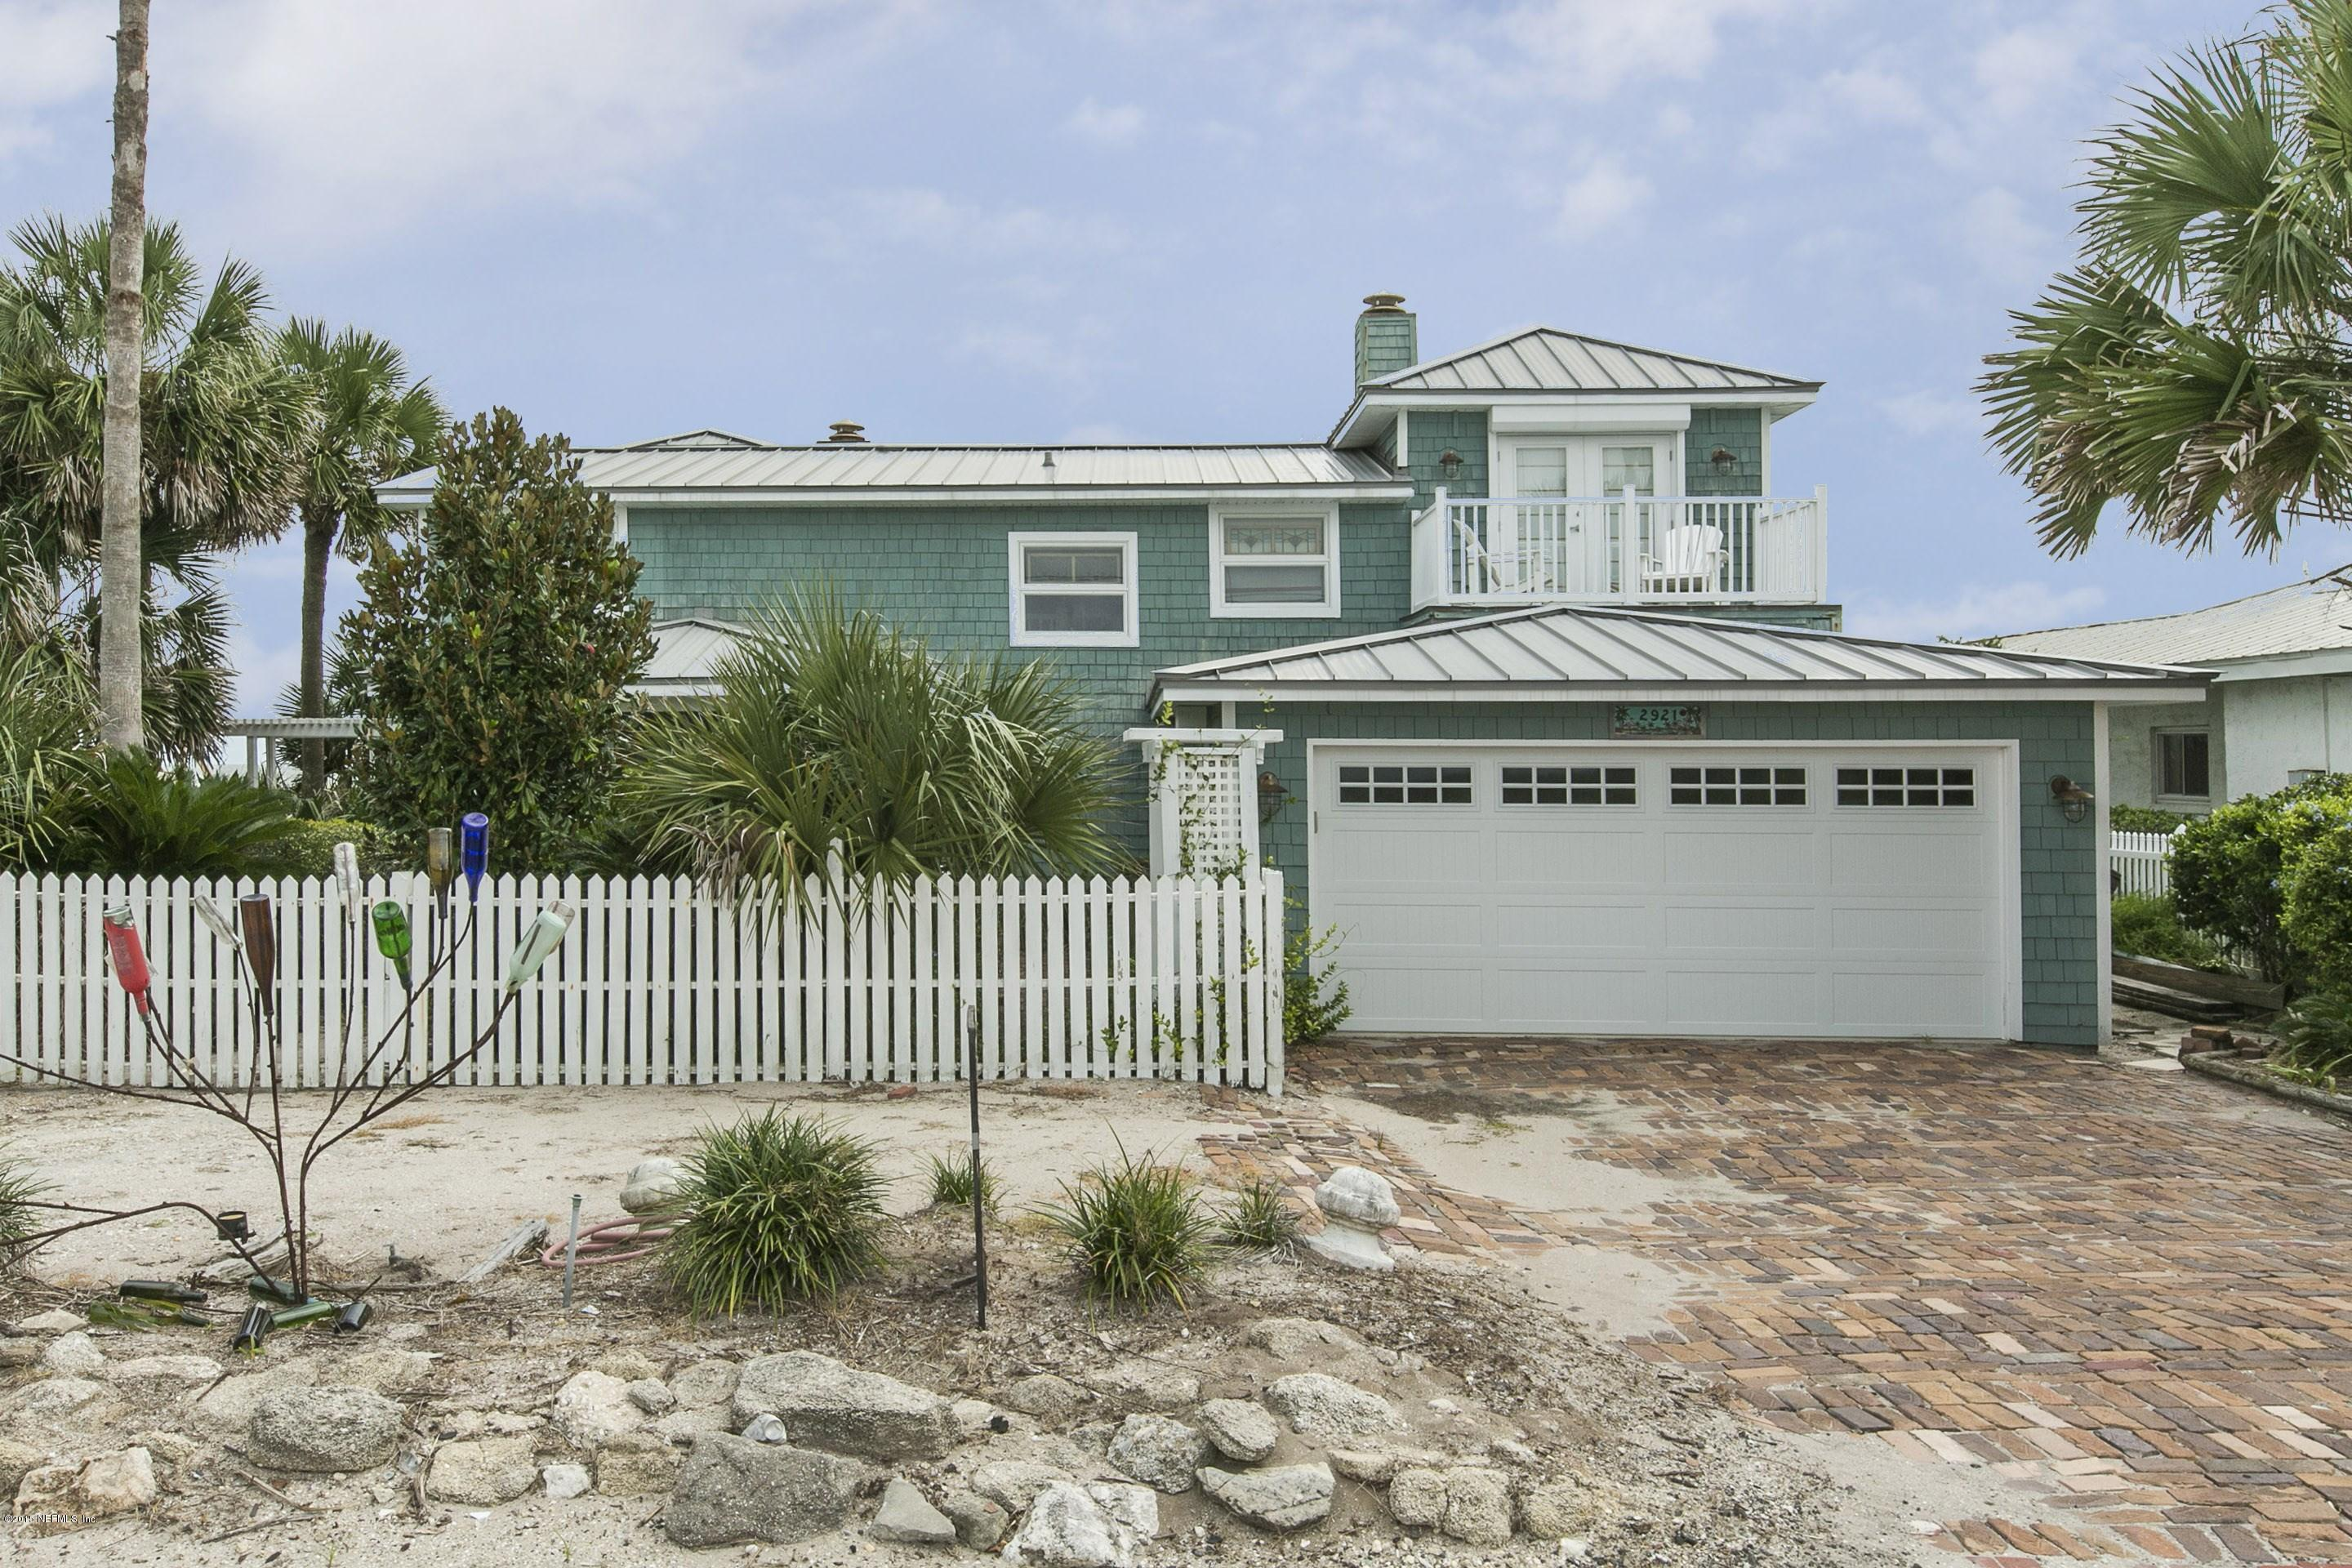 2921 PONTE VEDRA, PONTE VEDRA BEACH, FLORIDA 32082, 3 Bedrooms Bedrooms, ,3 BathroomsBathrooms,Residential - single family,For sale,PONTE VEDRA,794484